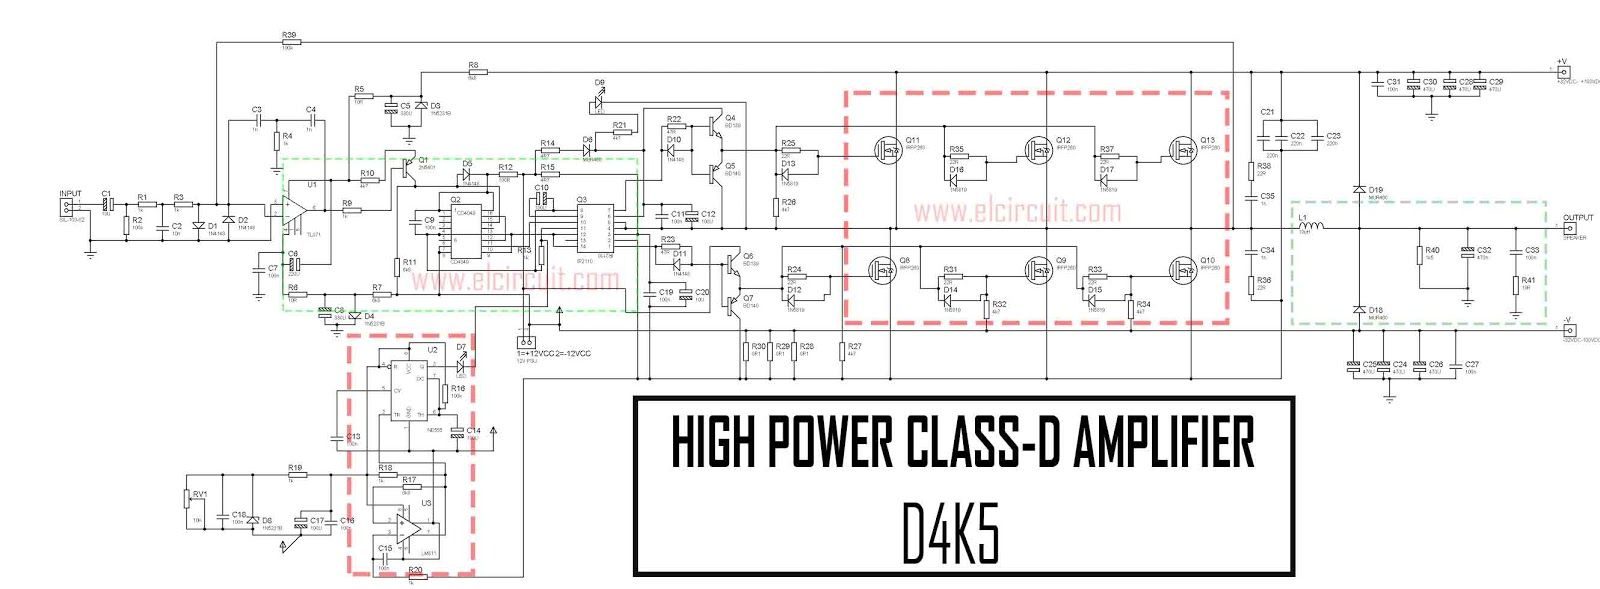 medium resolution of power amplifier circuit diagram class d d4k5